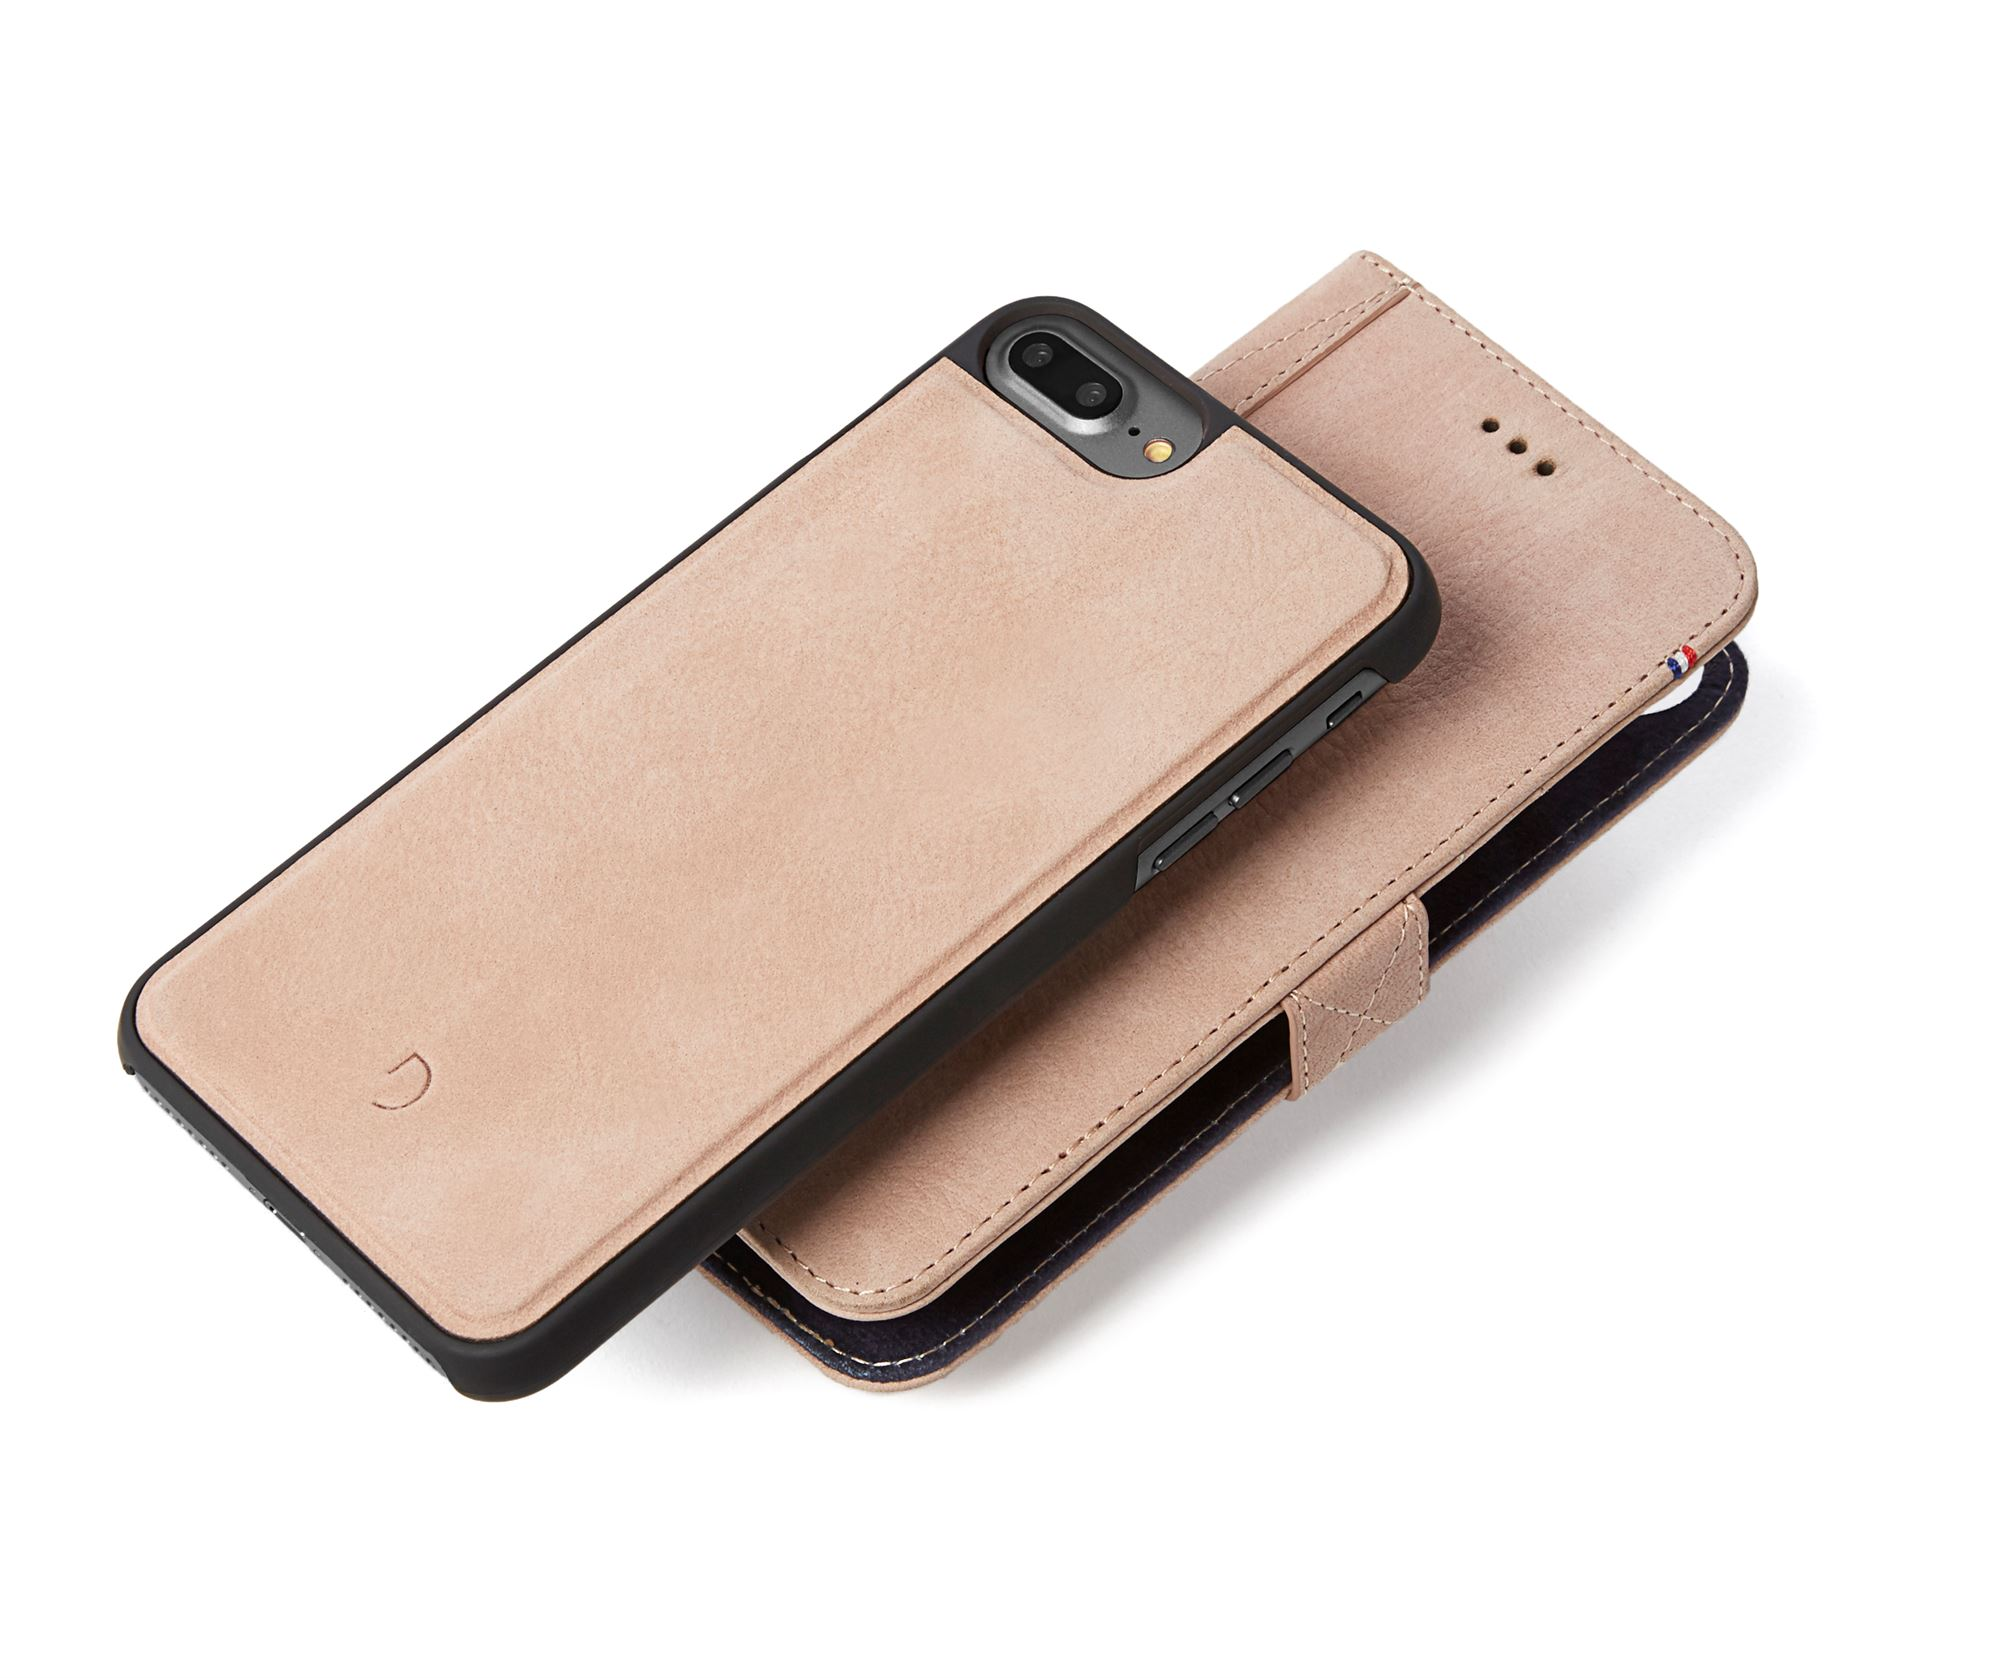 Rose læder cover til iphone 7 plus med kortholder